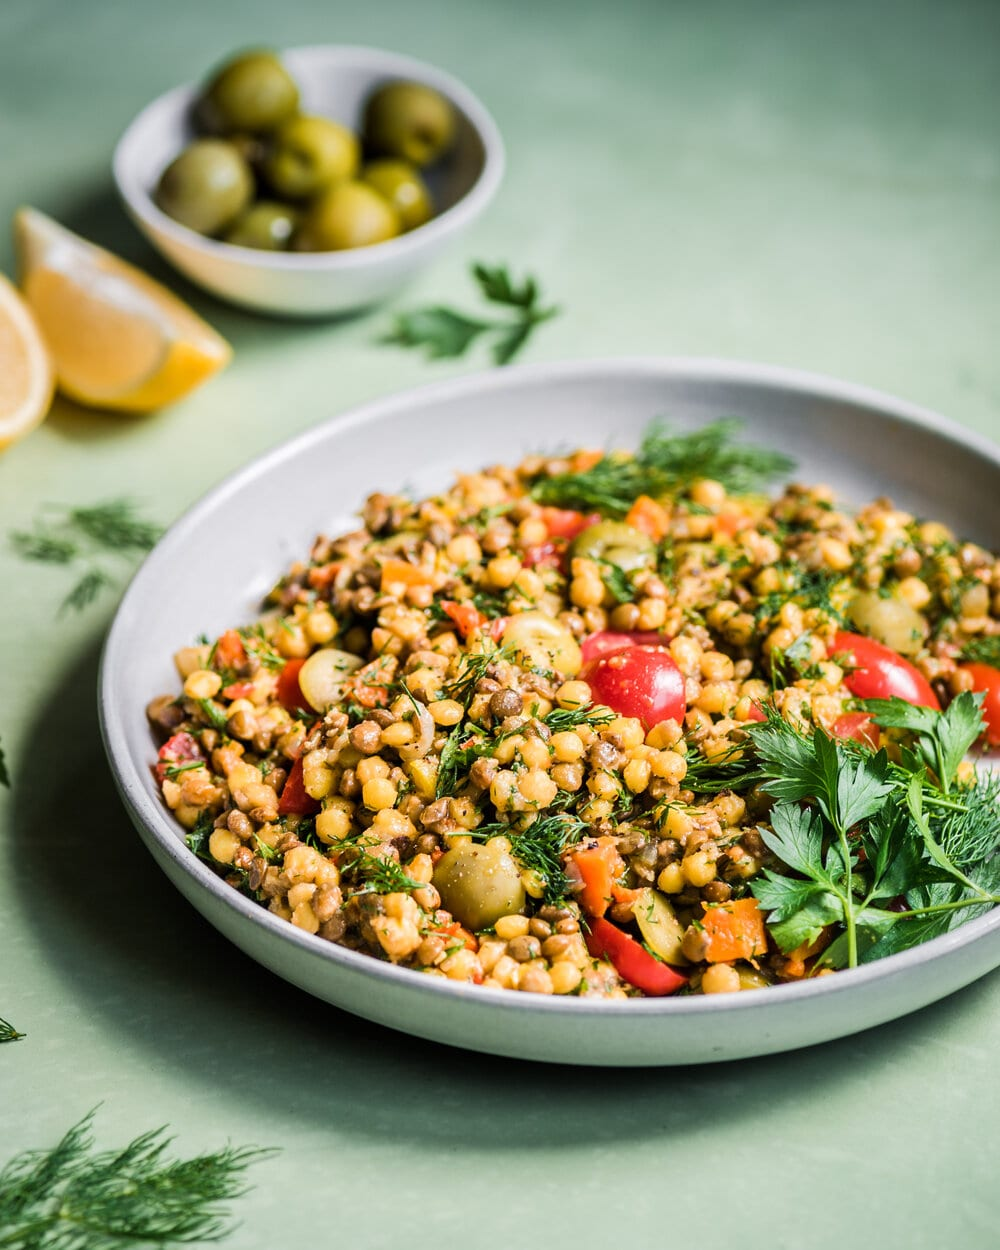 Instant Pot Israeli Couscous and Lentil Salad